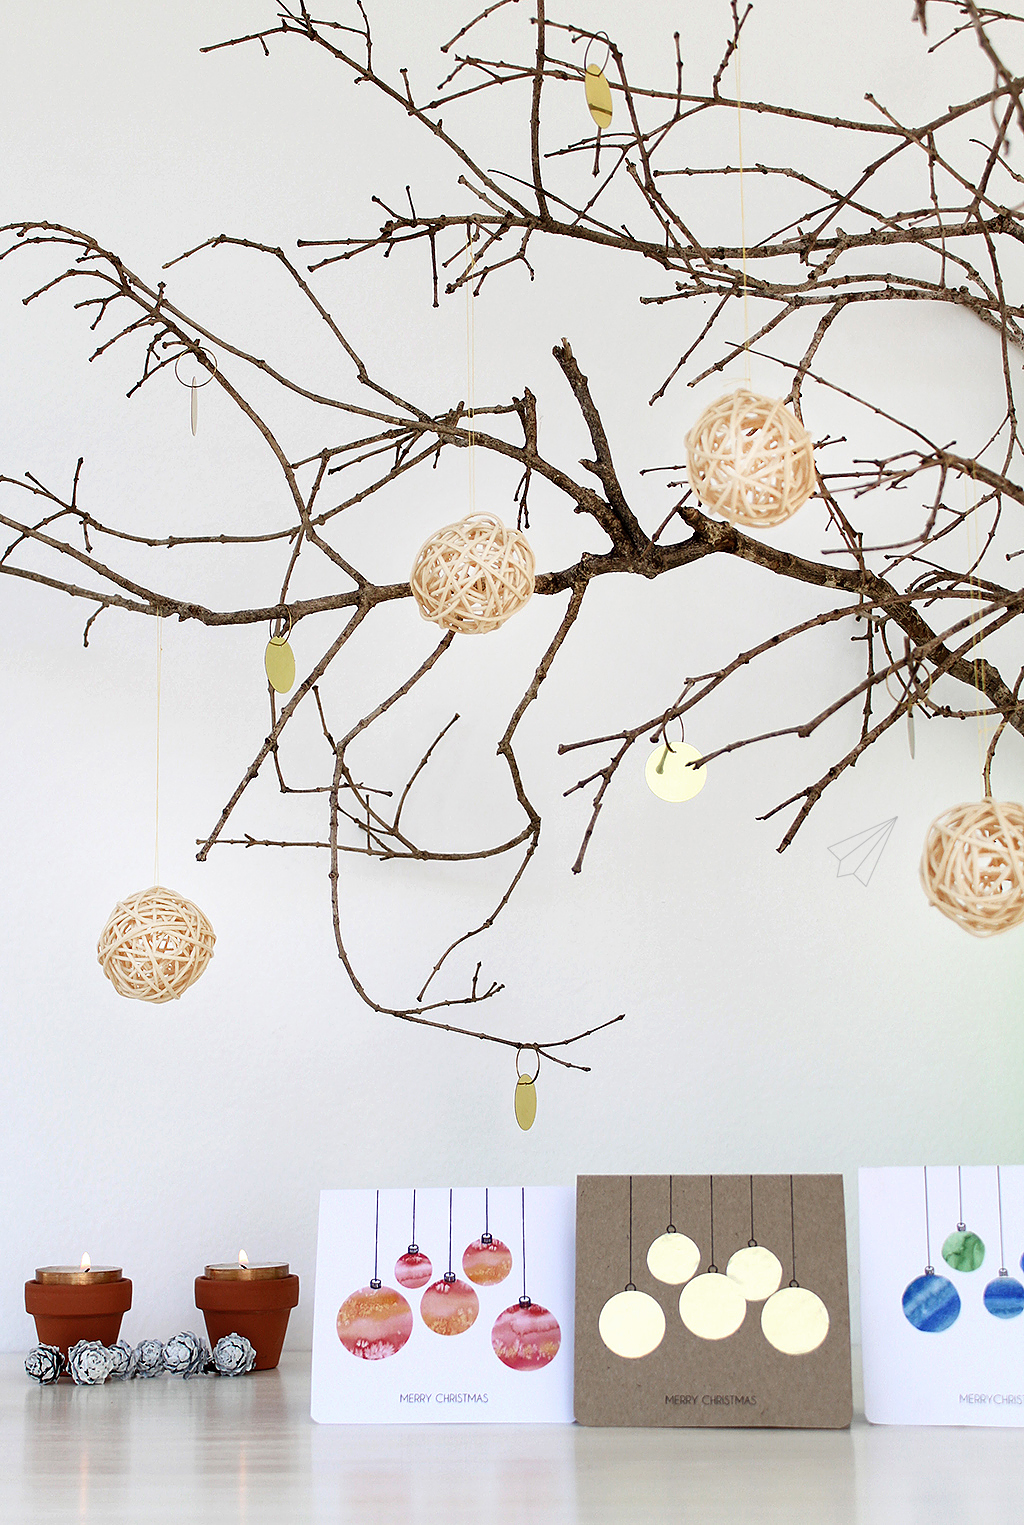 How To Make Christmas Cards With Baubles Free